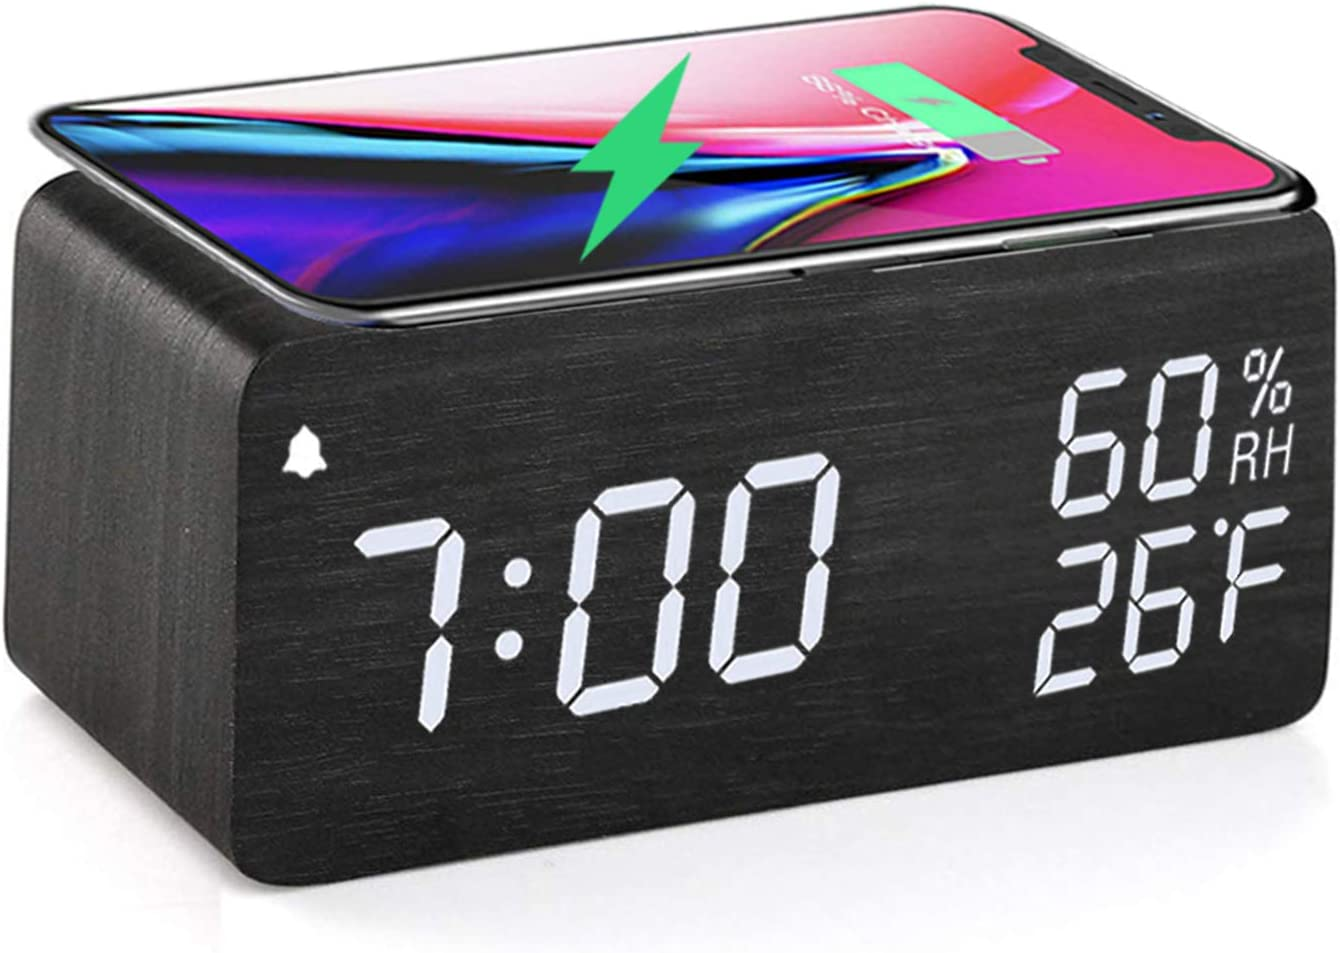 Wireless alram clock with LED display,Sound Control with 12/24H Snooze for bedroom office travel compitable with all android phones.